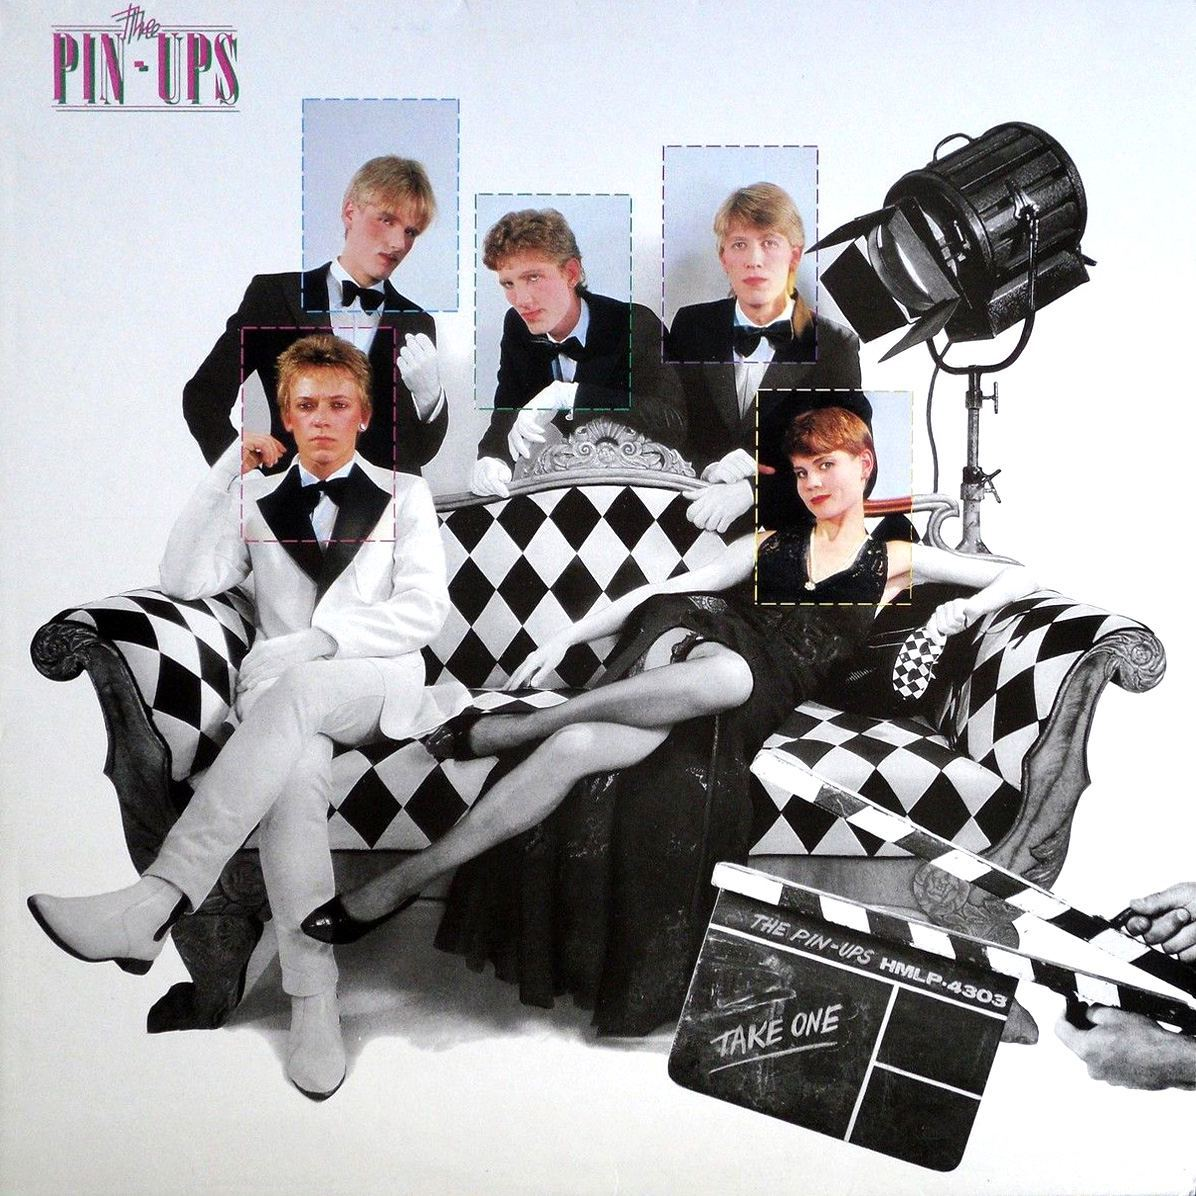 PIN-UPS Take One Danish Power Pop Punk LP 1981 Brats